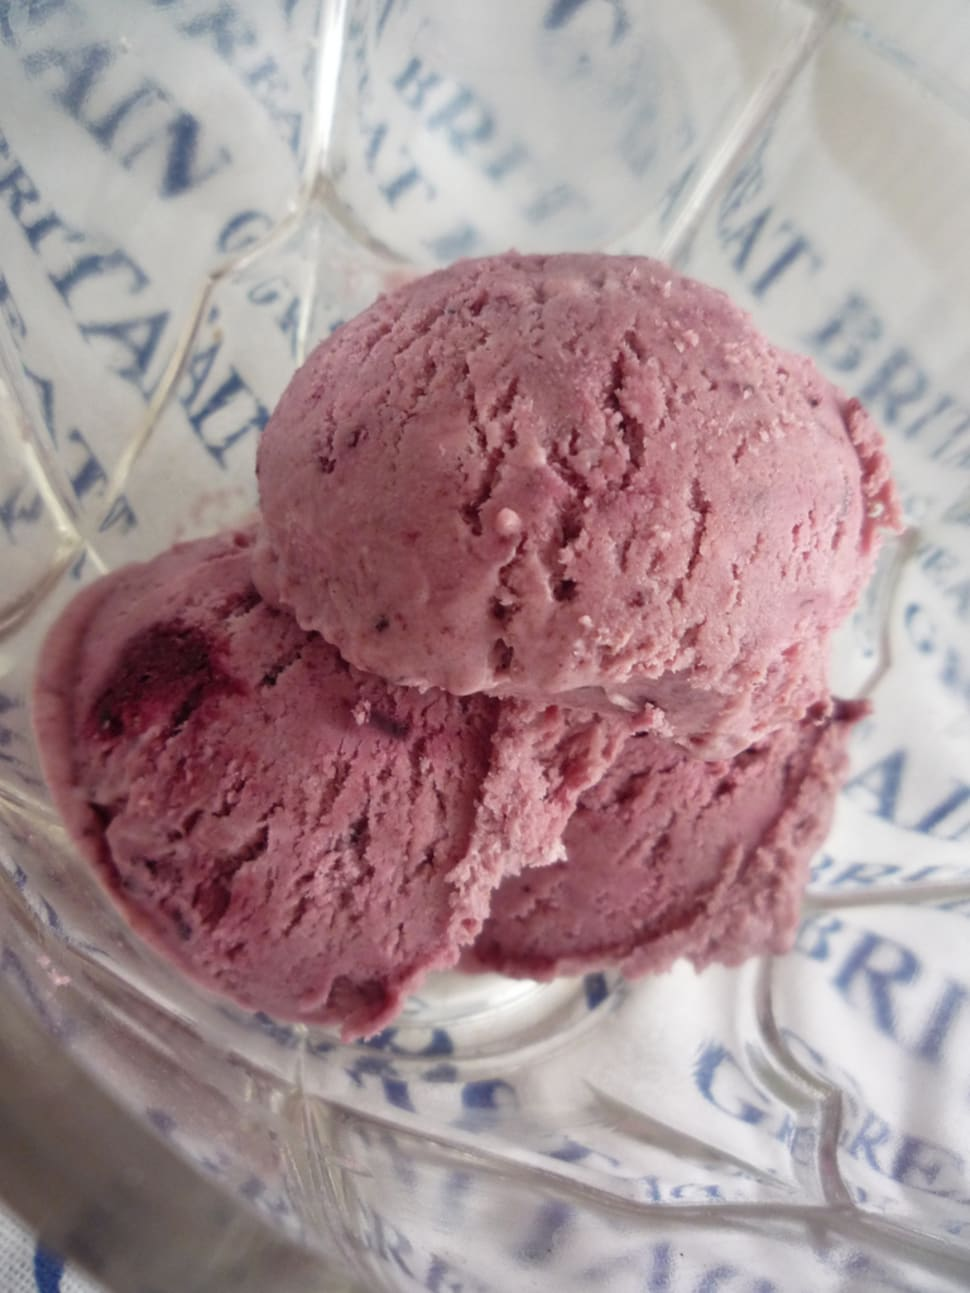 Damson ice cream